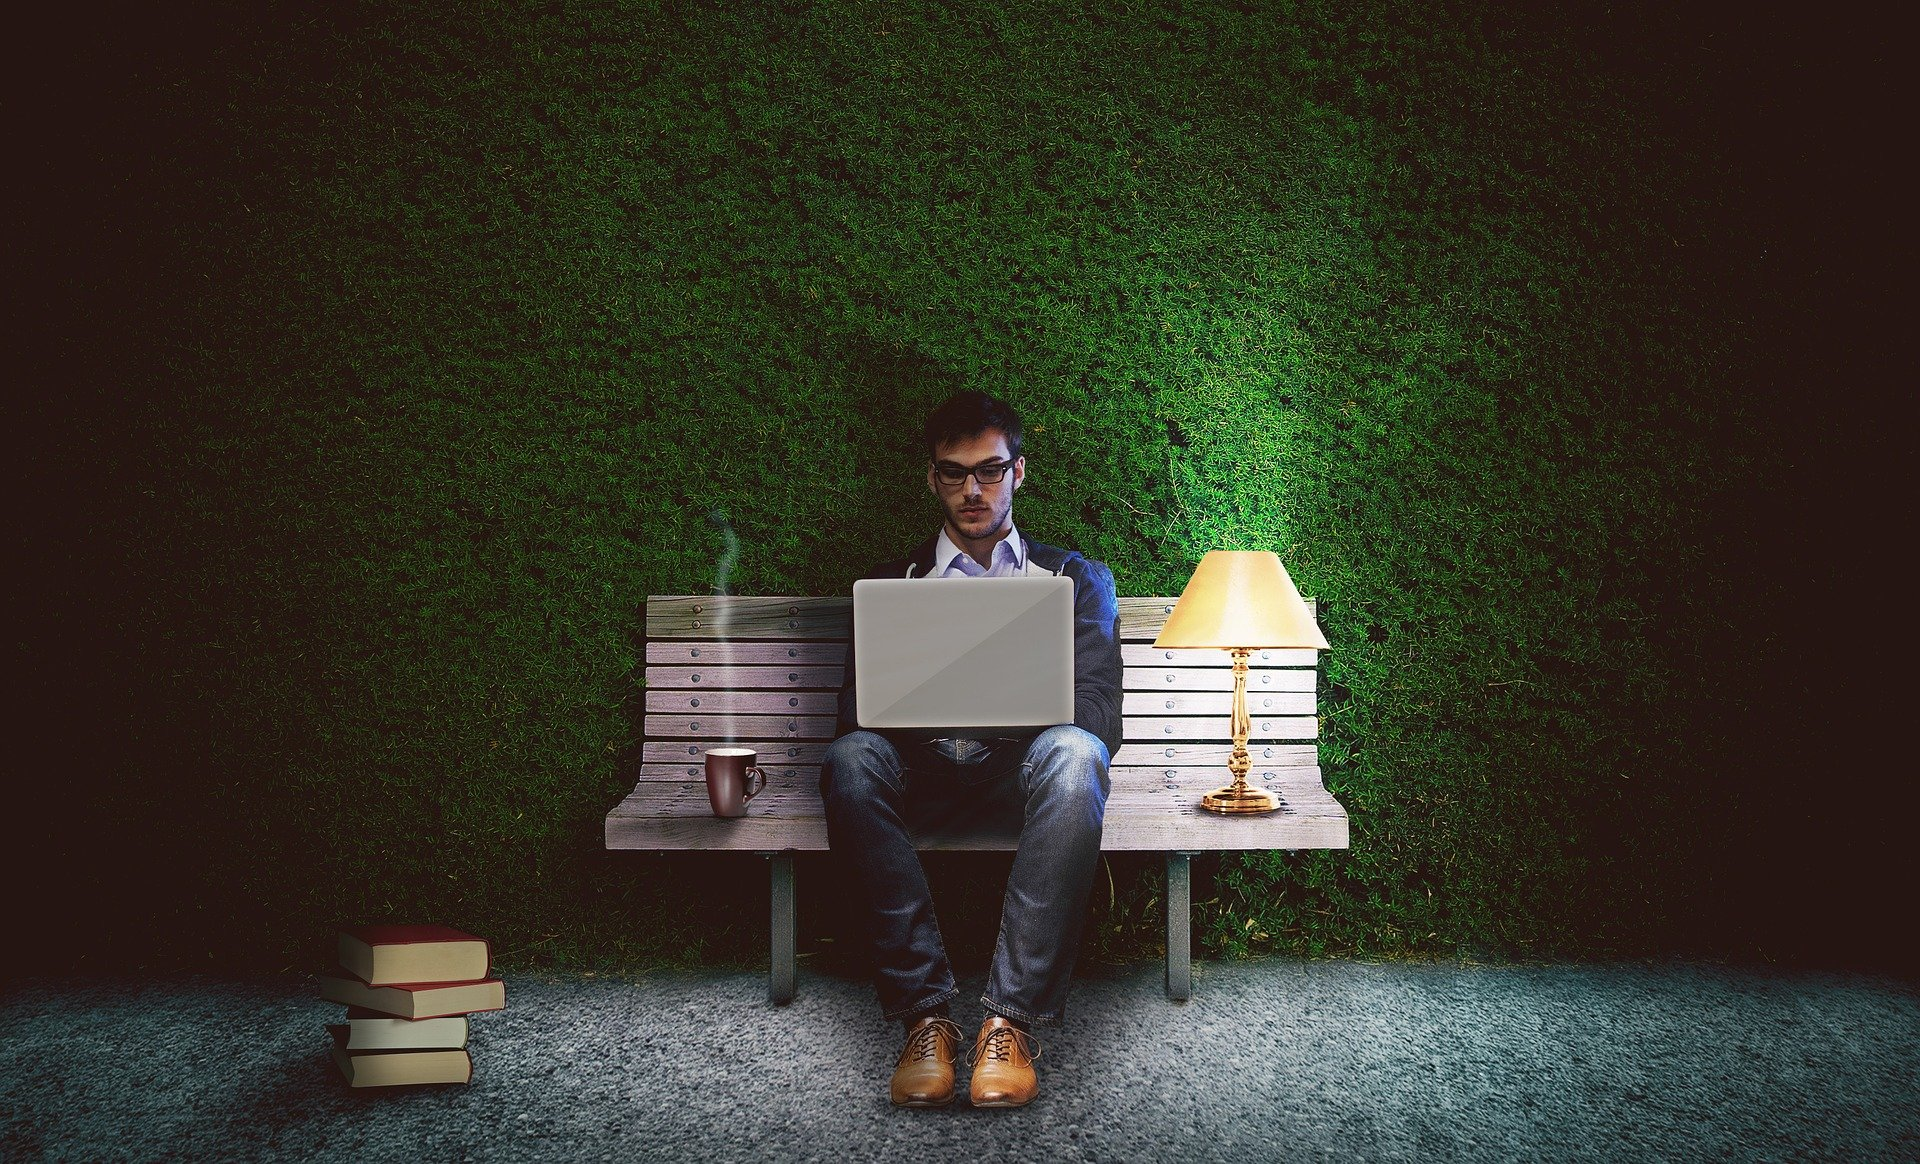 A man sat on a park bench in the dark with a laptop on his knee and a lamp by his side.